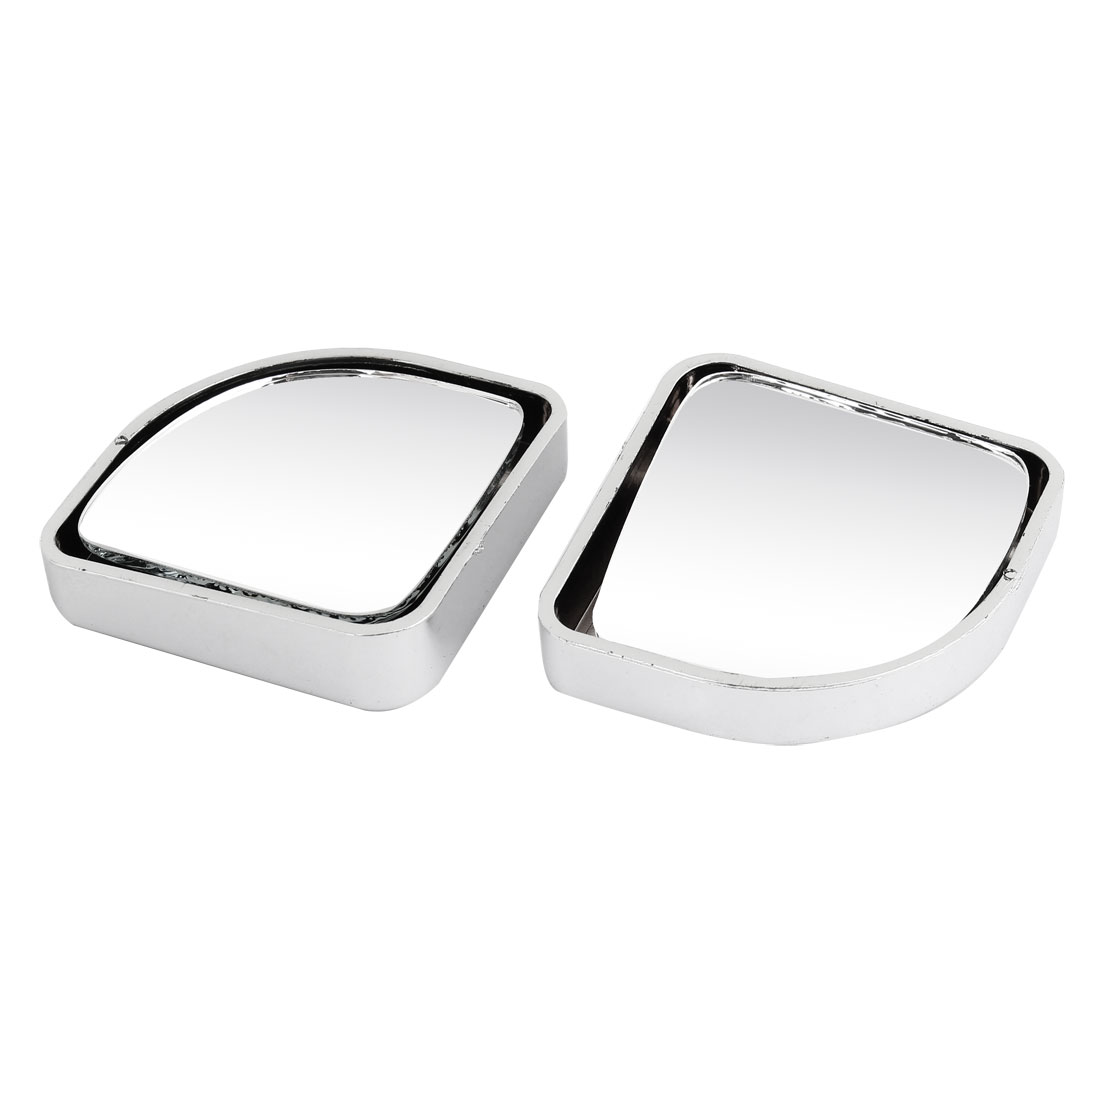 2 Pcs Silver Tone Plastic Shell Car Convex Rear View Blind Spot Mirror